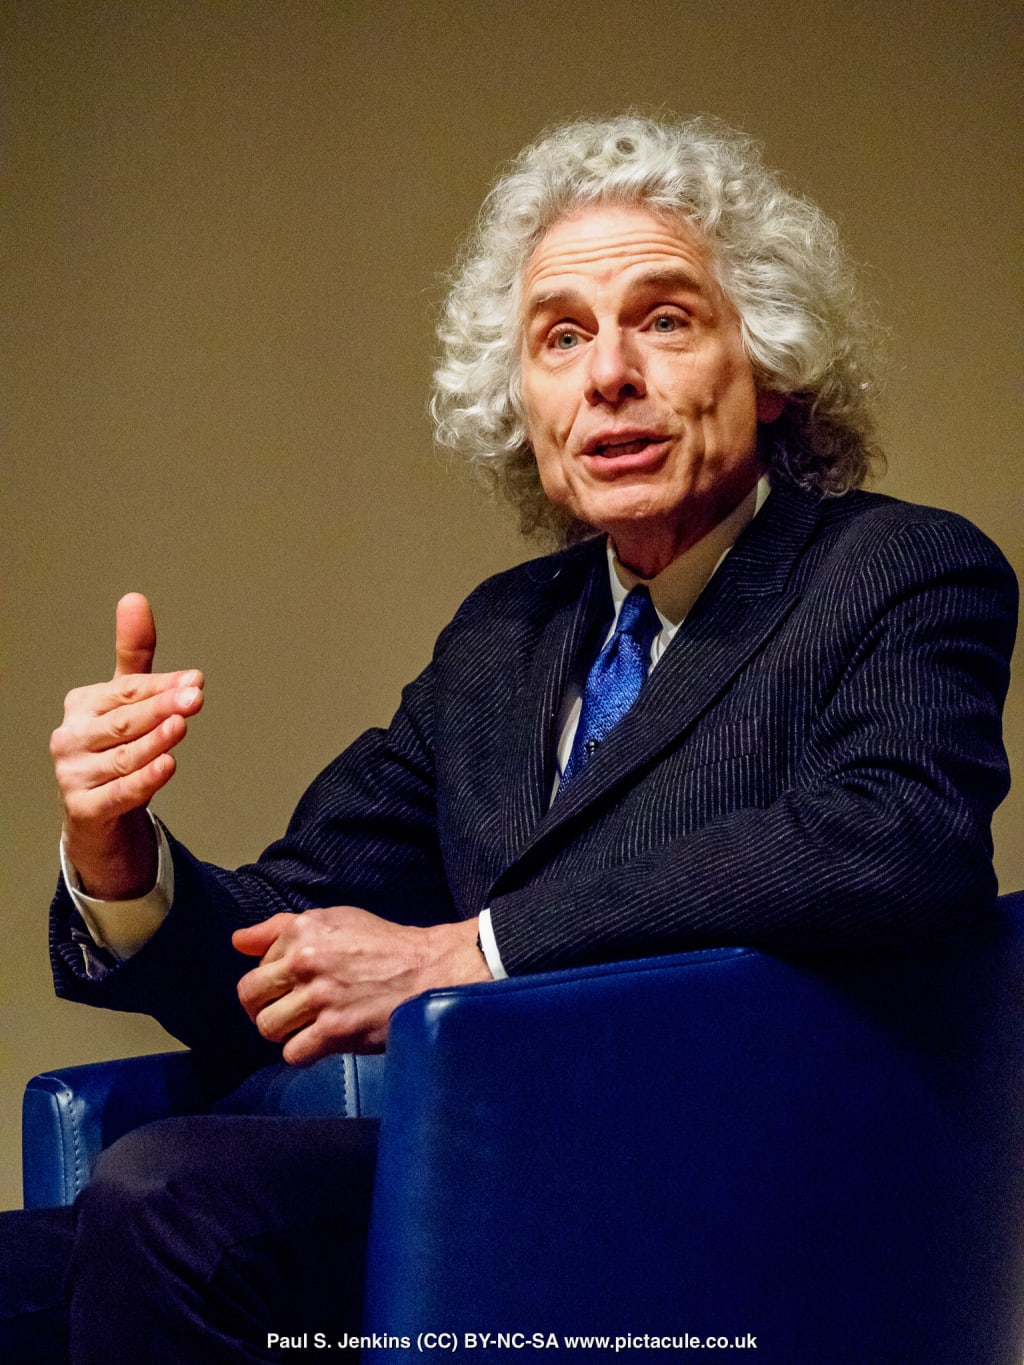 Why Are You Ranking: Ideas in Steven Pinker's 'Enlightenment Now' Listed from Inhumane to Rational